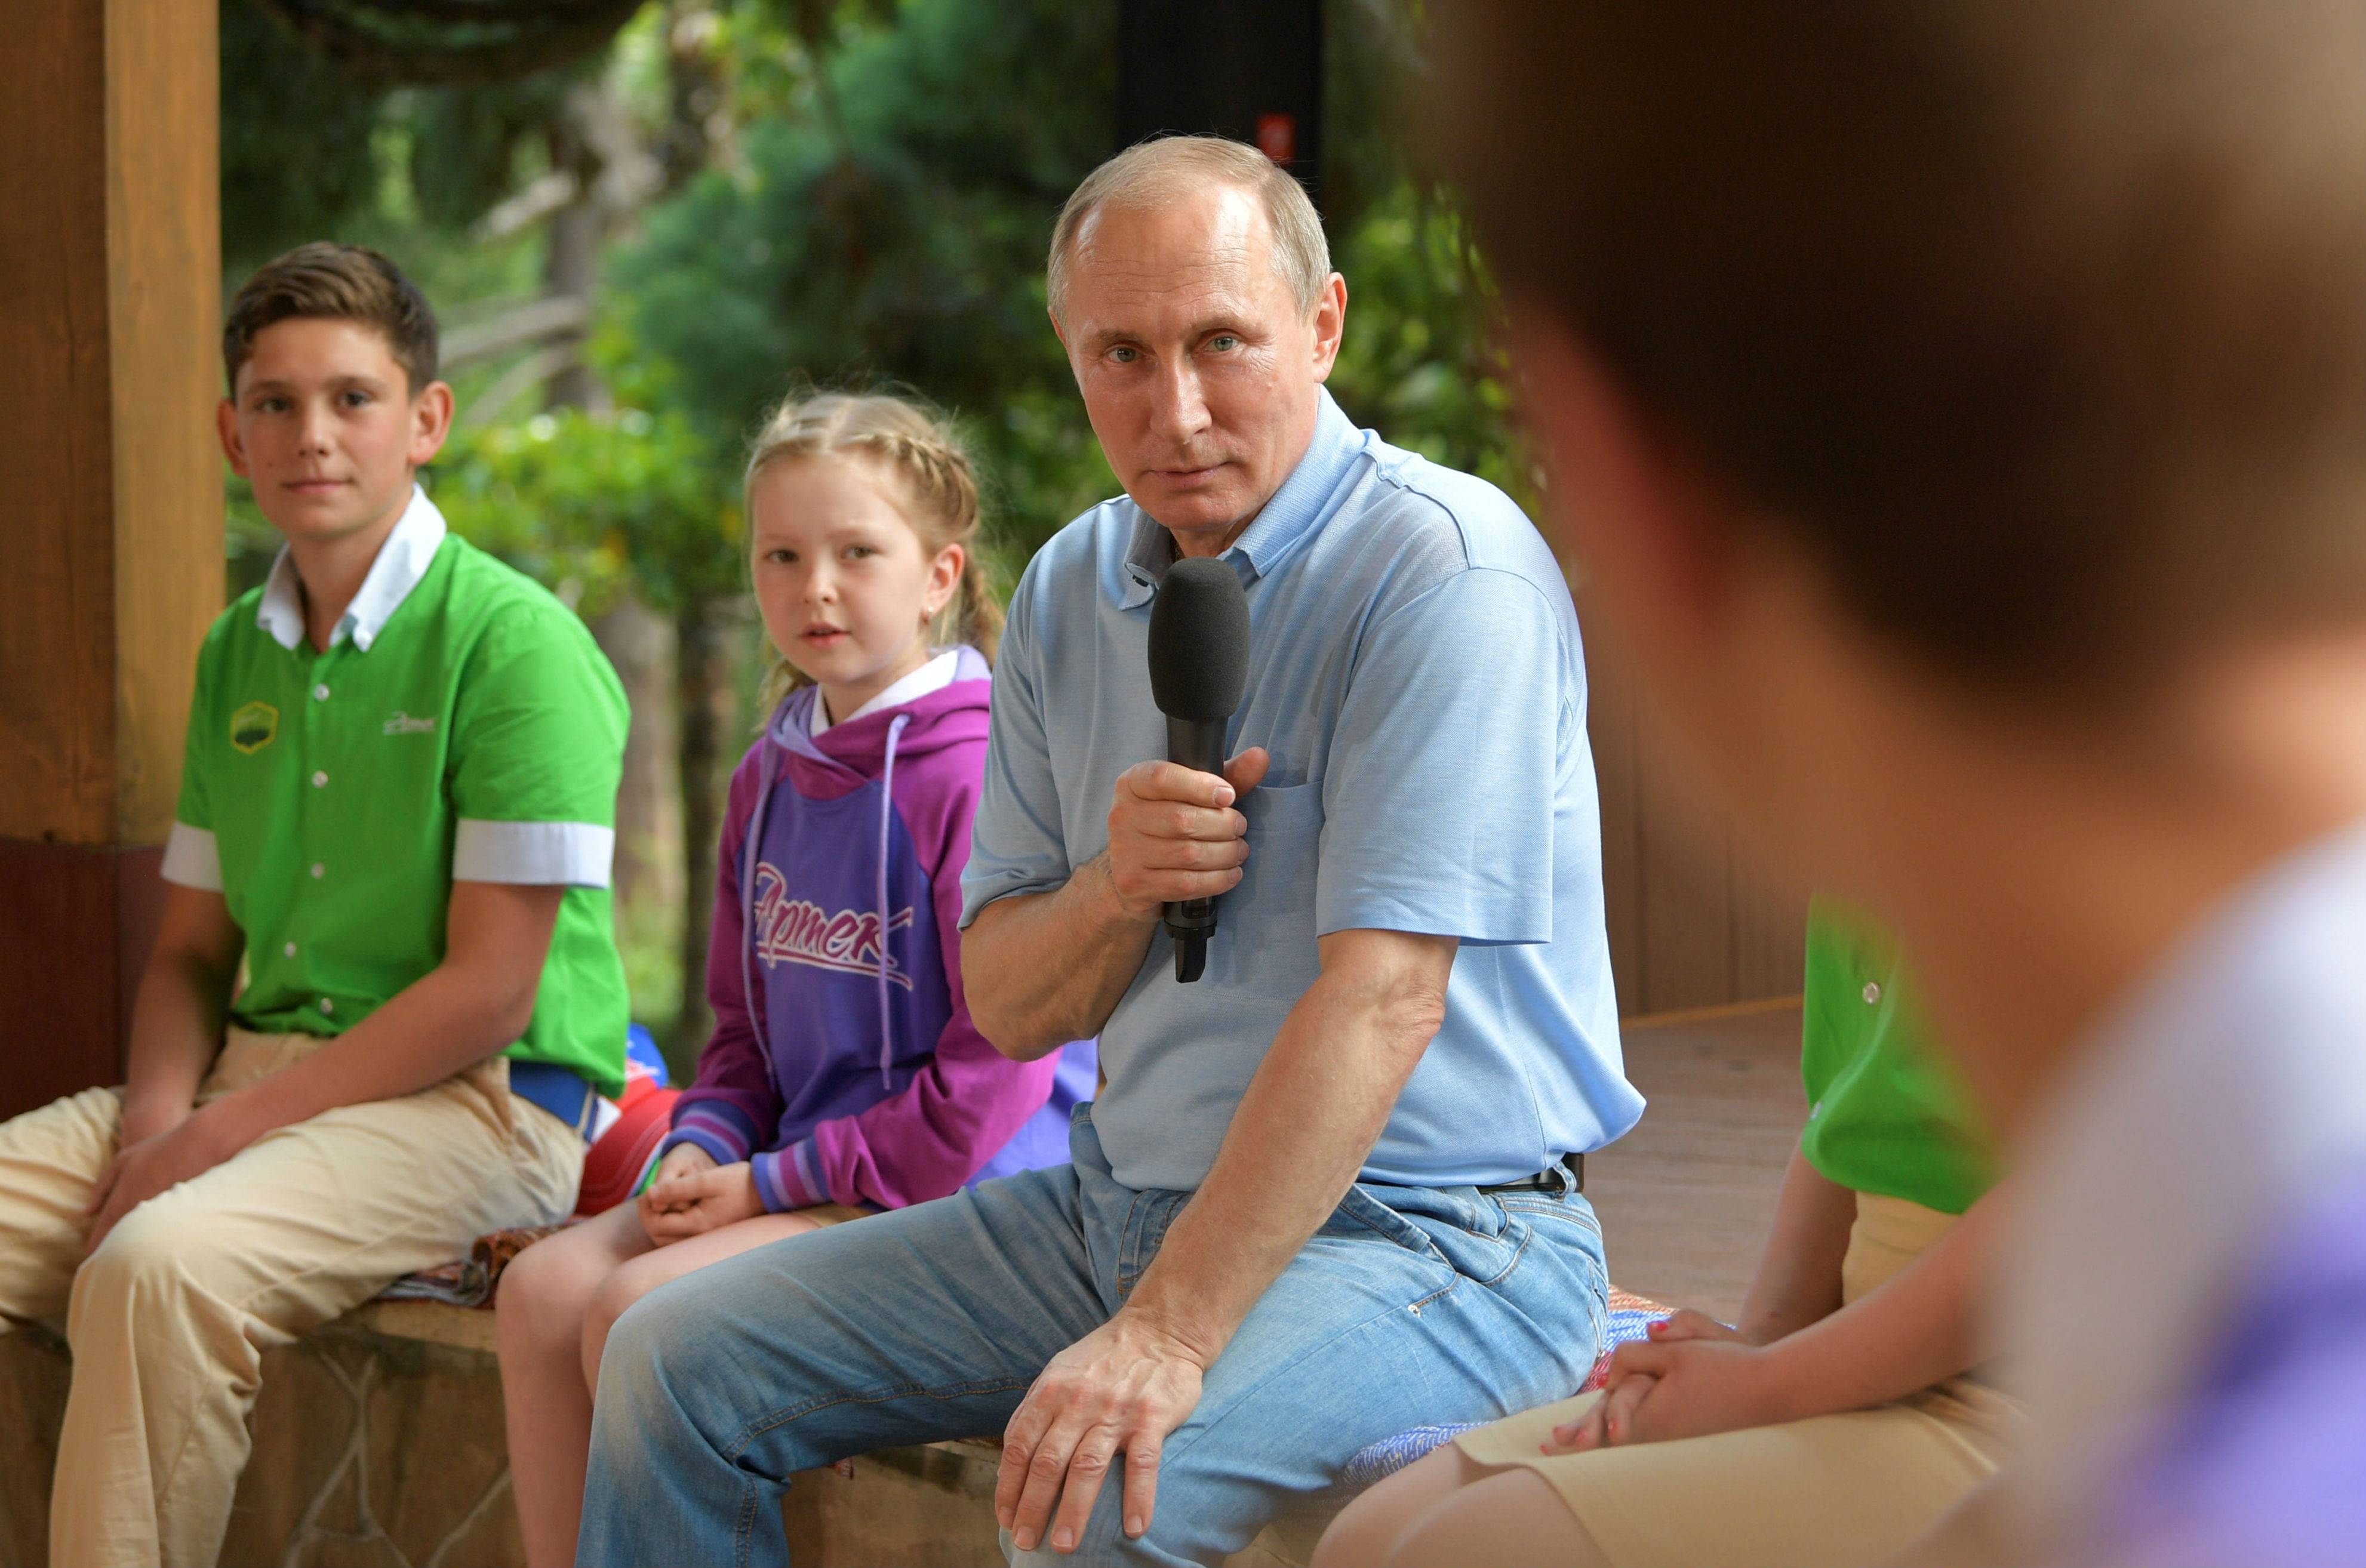 Children as a tool: how Russia militarizes kids in the Donbas and Crimea